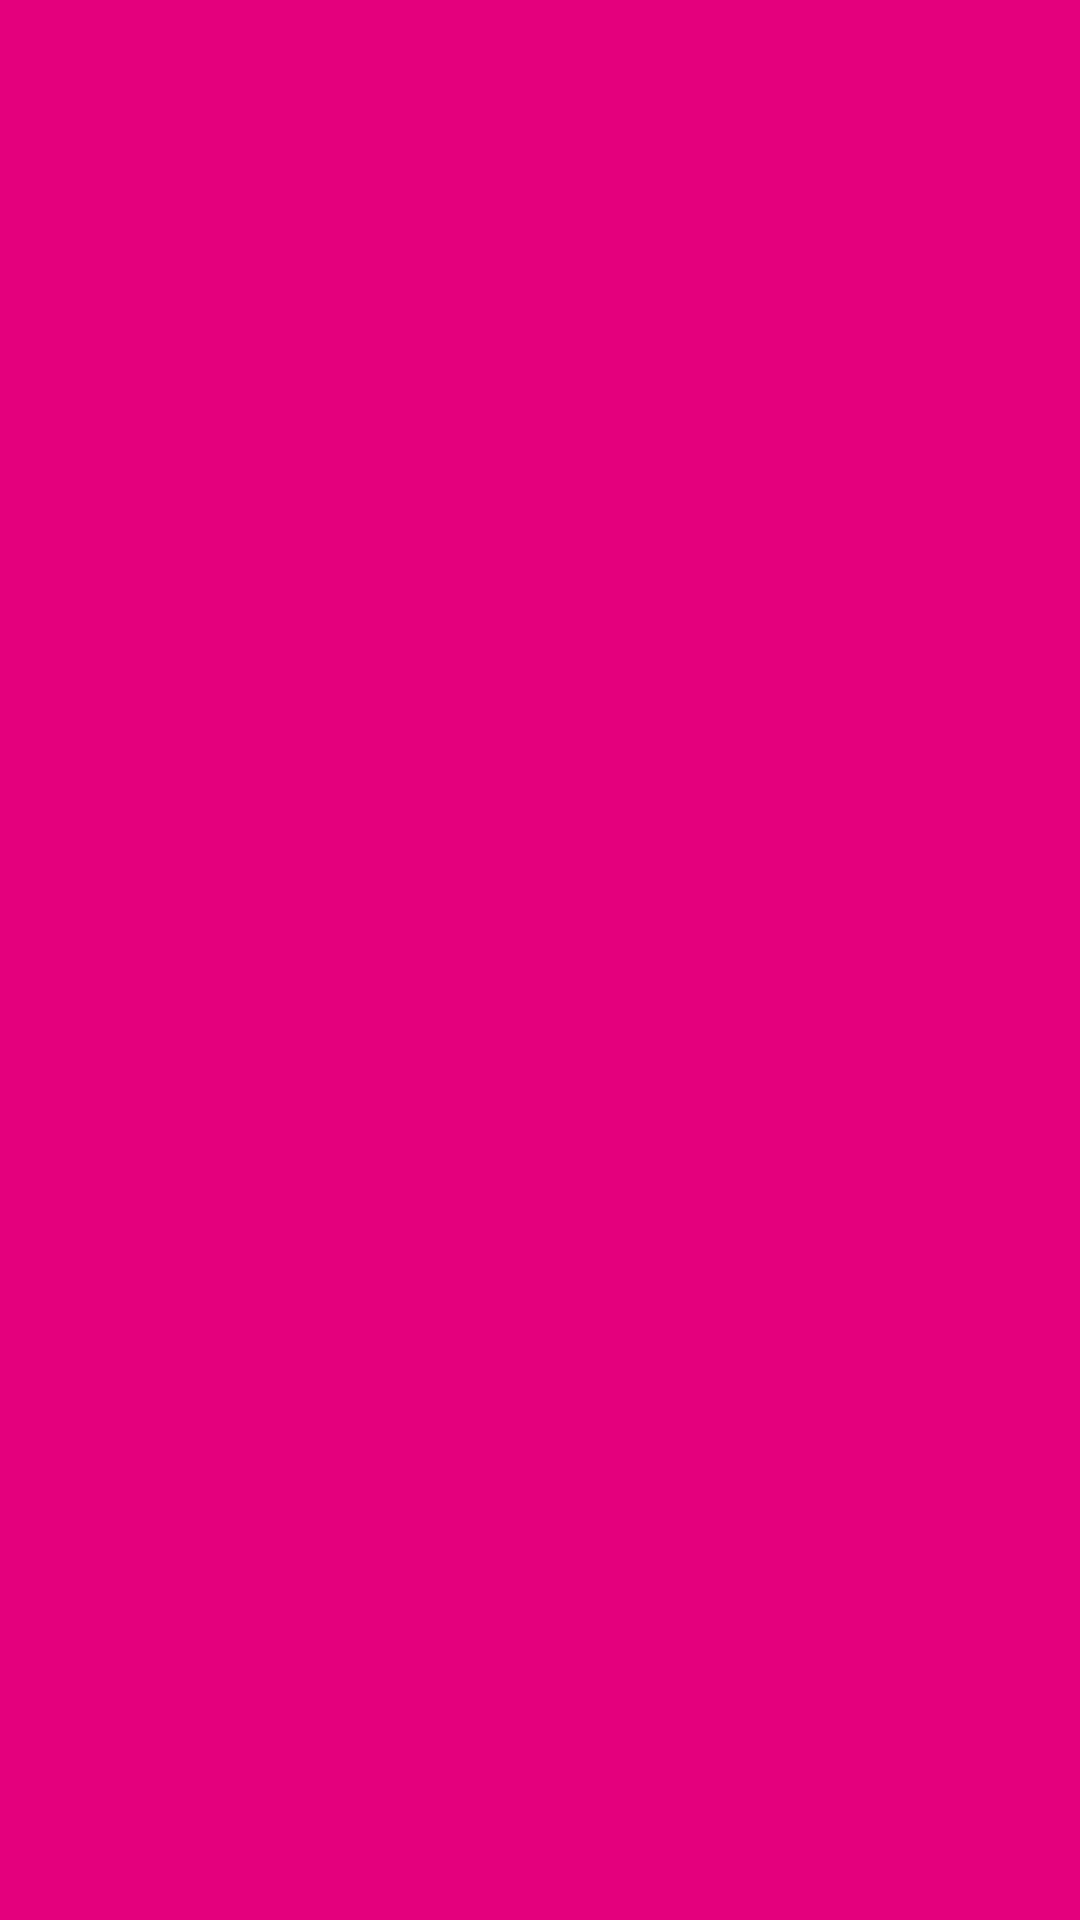 1080x1920 Mexican Pink Solid Color Background